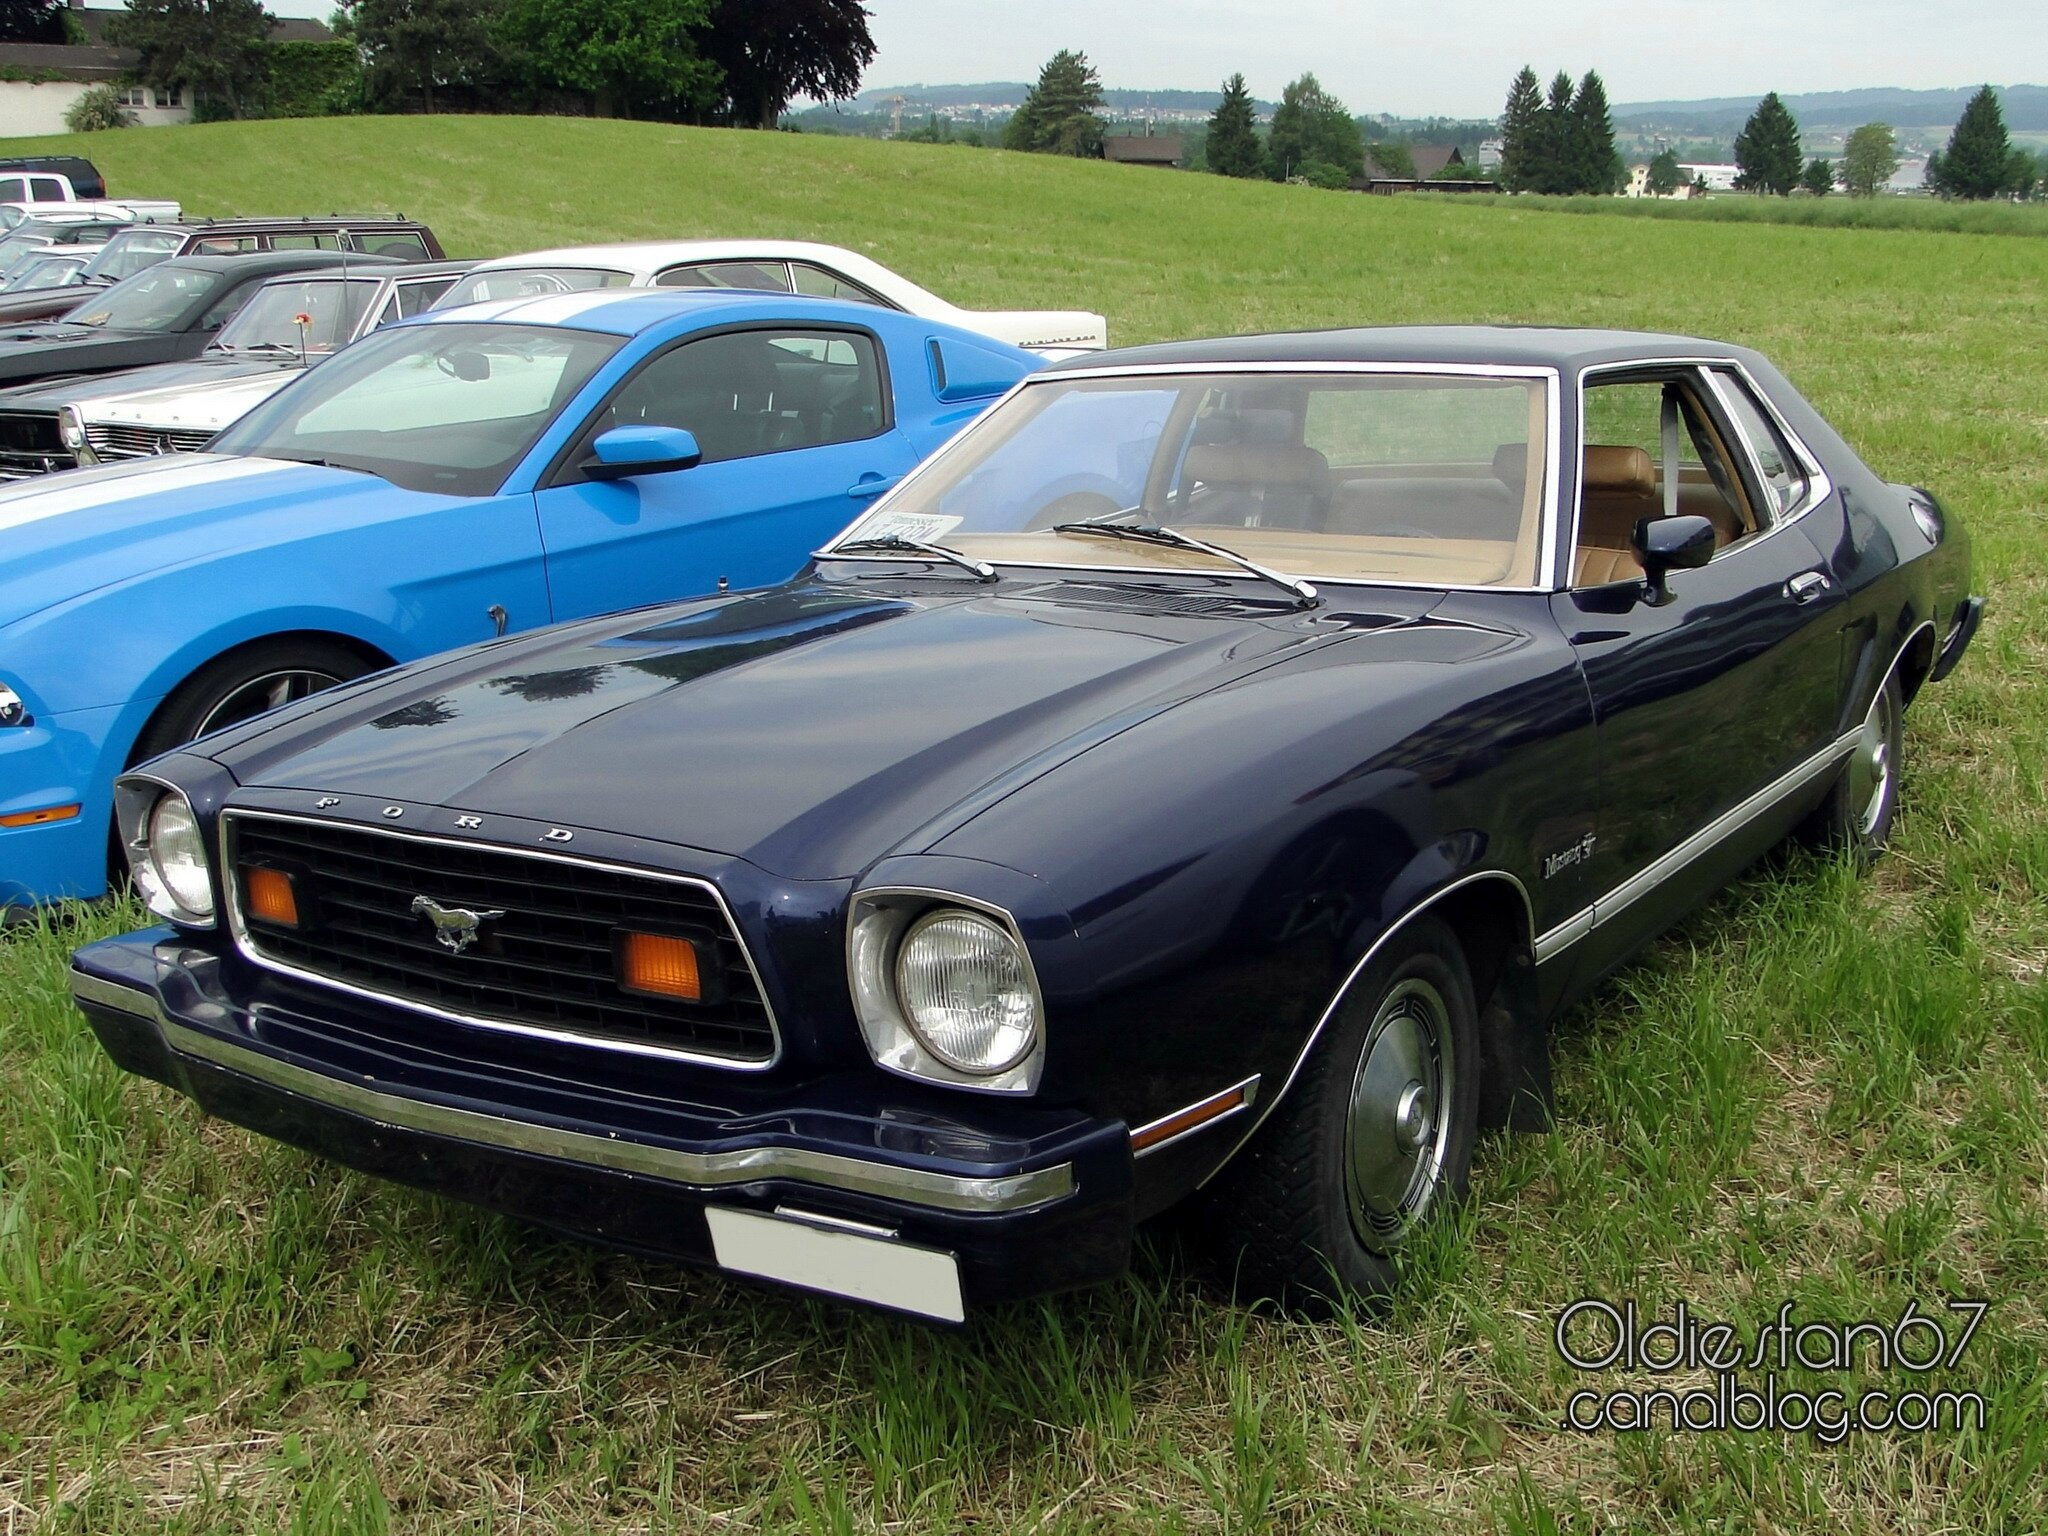 ford mustang ii hardtop coupe 1975 oldiesfan67 mon. Black Bedroom Furniture Sets. Home Design Ideas